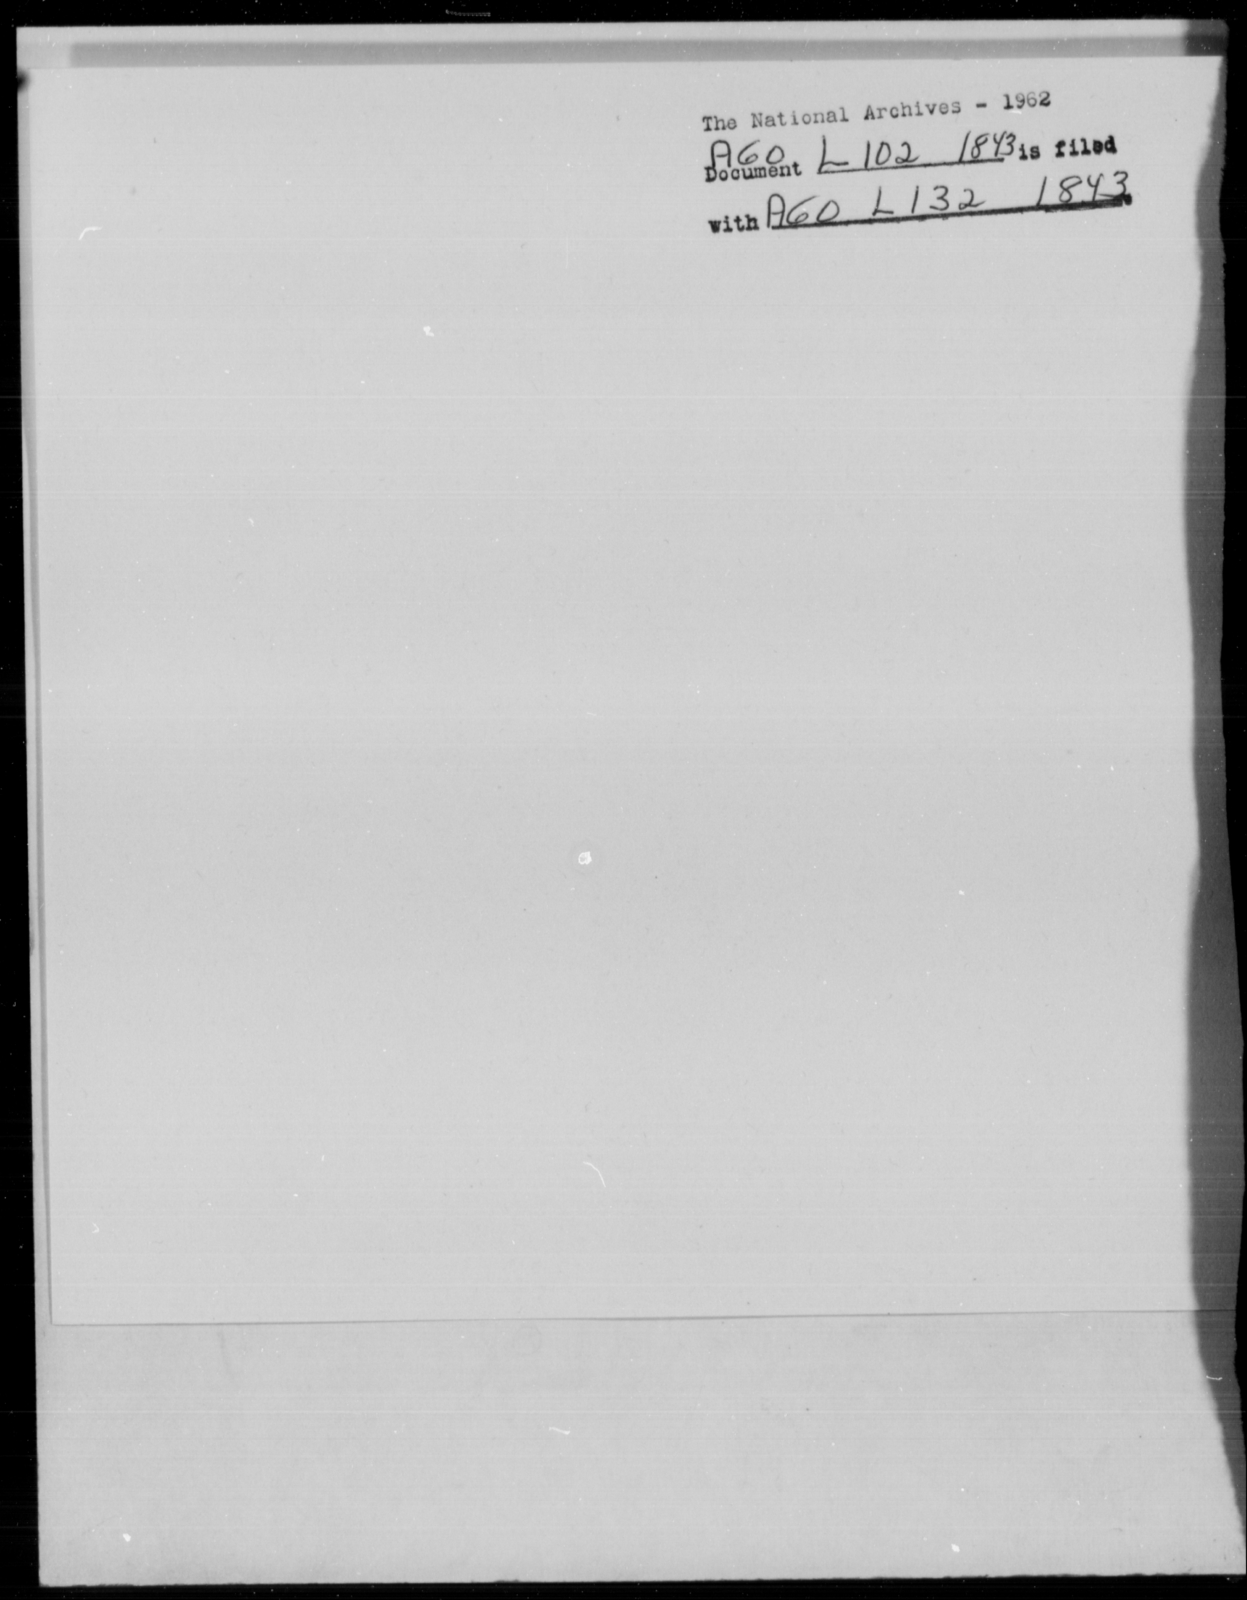 Lawson, Thomas - State: [Blank] - Year: 1843 - File Number: L102